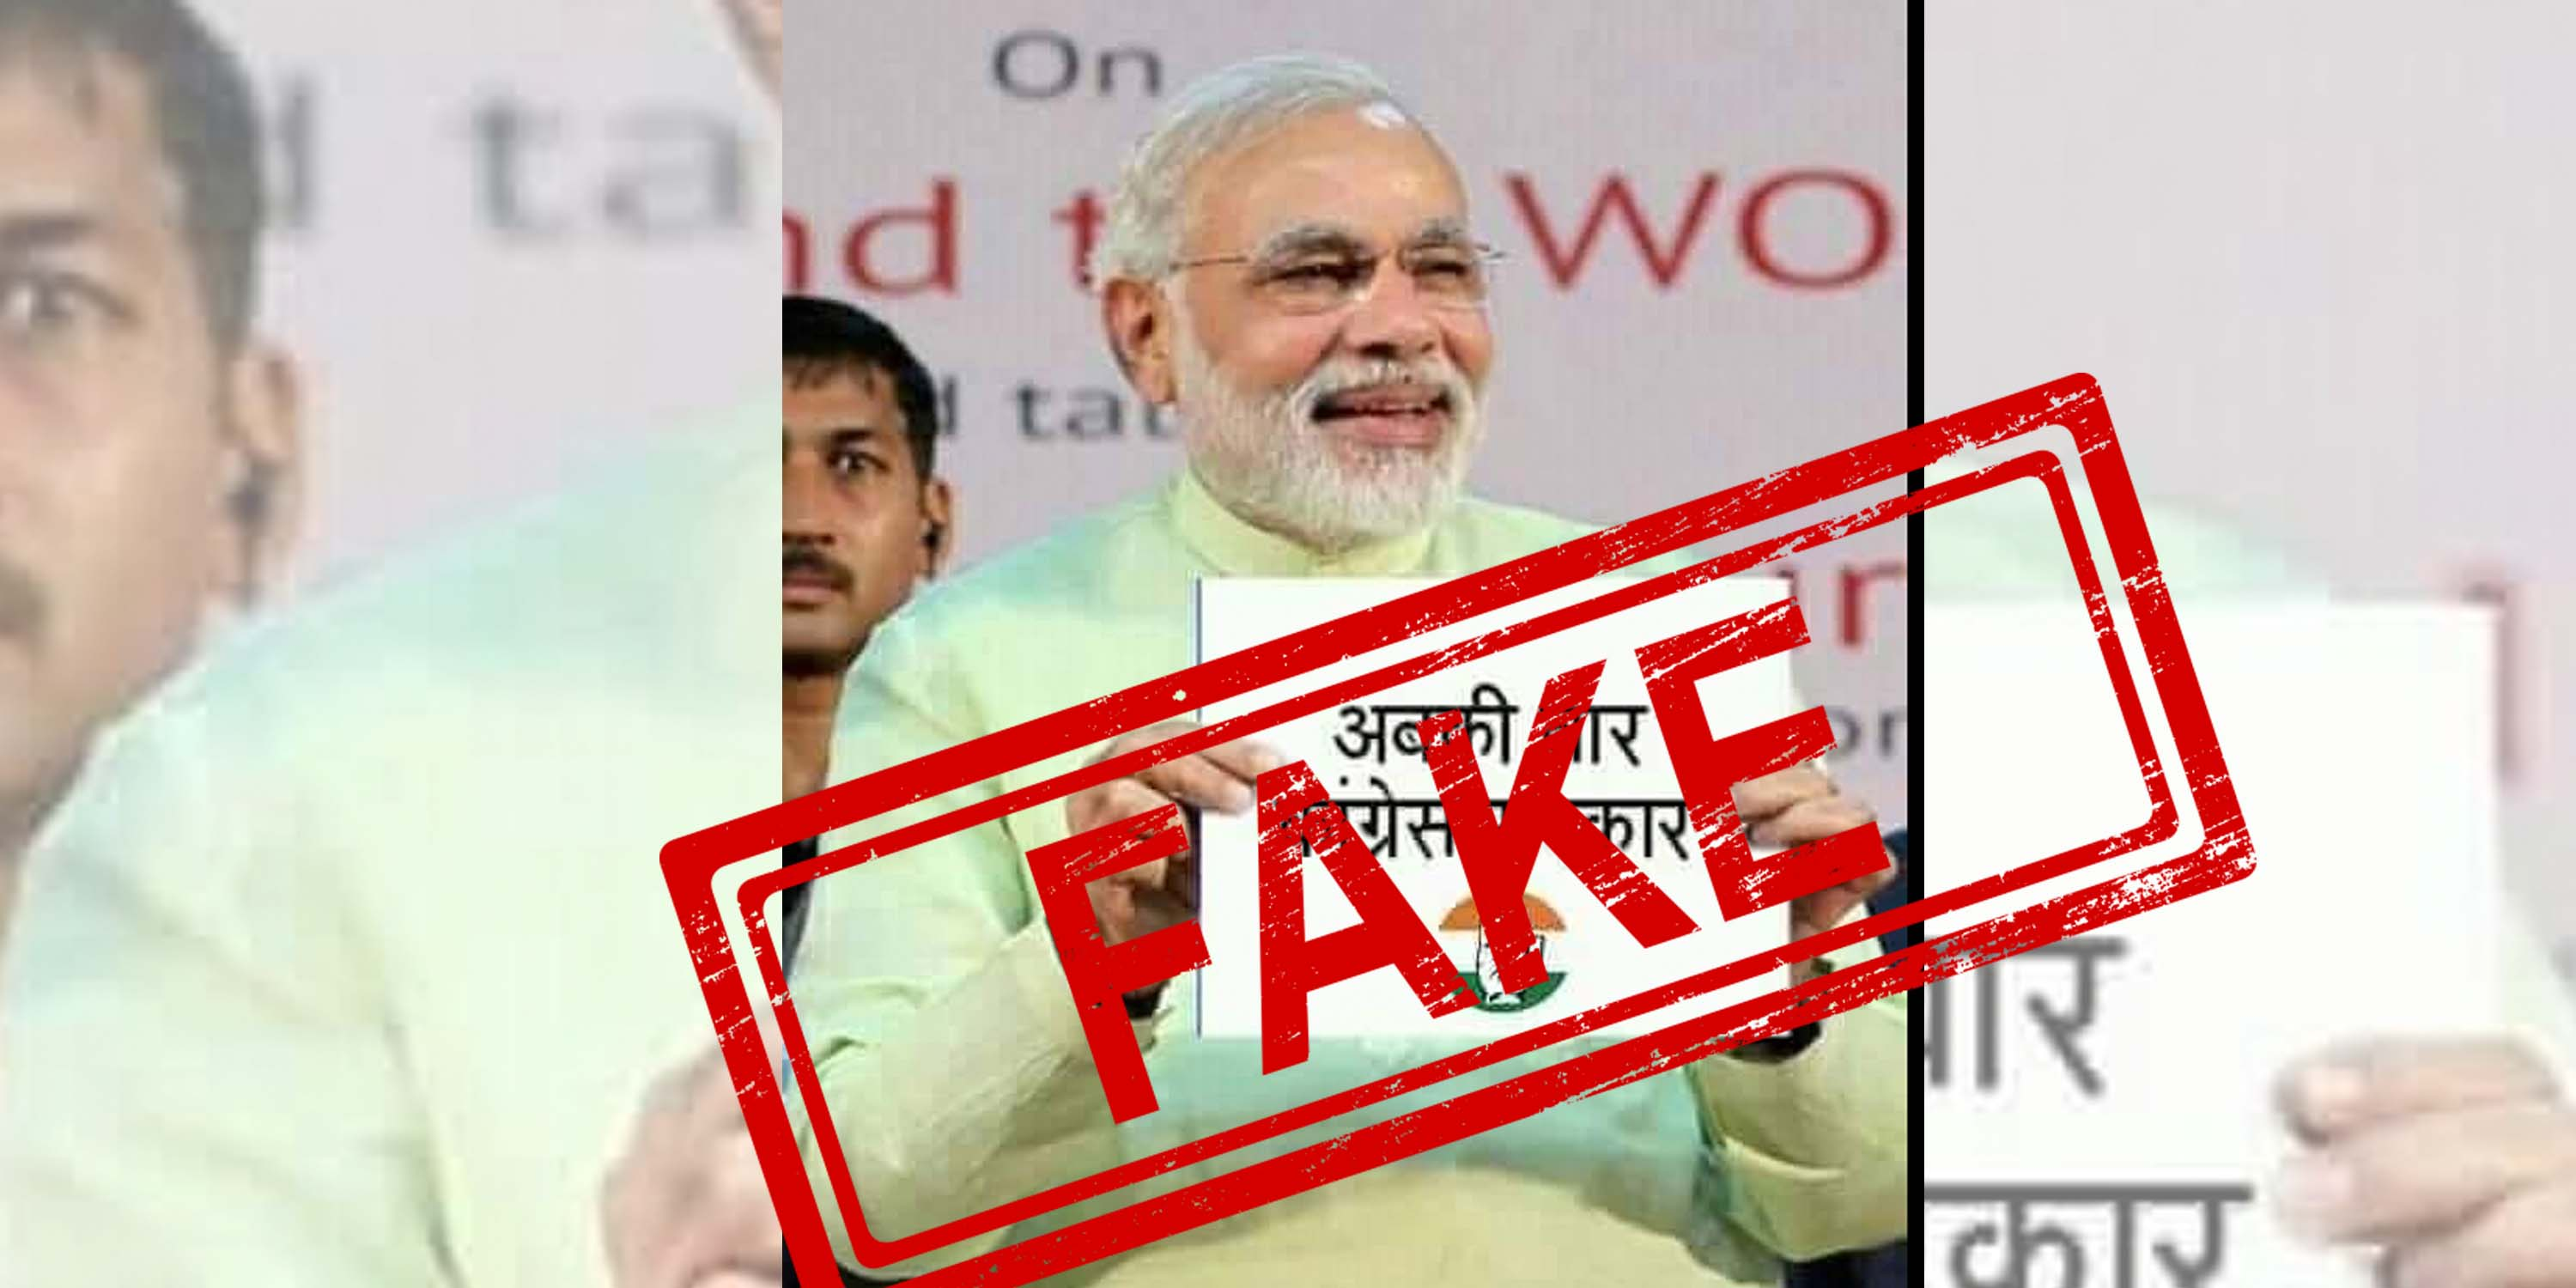 Arun Shourie, Prime Minister, Narendra Modi, Placard, Congress, NewsMobile, Mobile, News, India, Fake, Fact Check, Fact Checker, NewsMobile